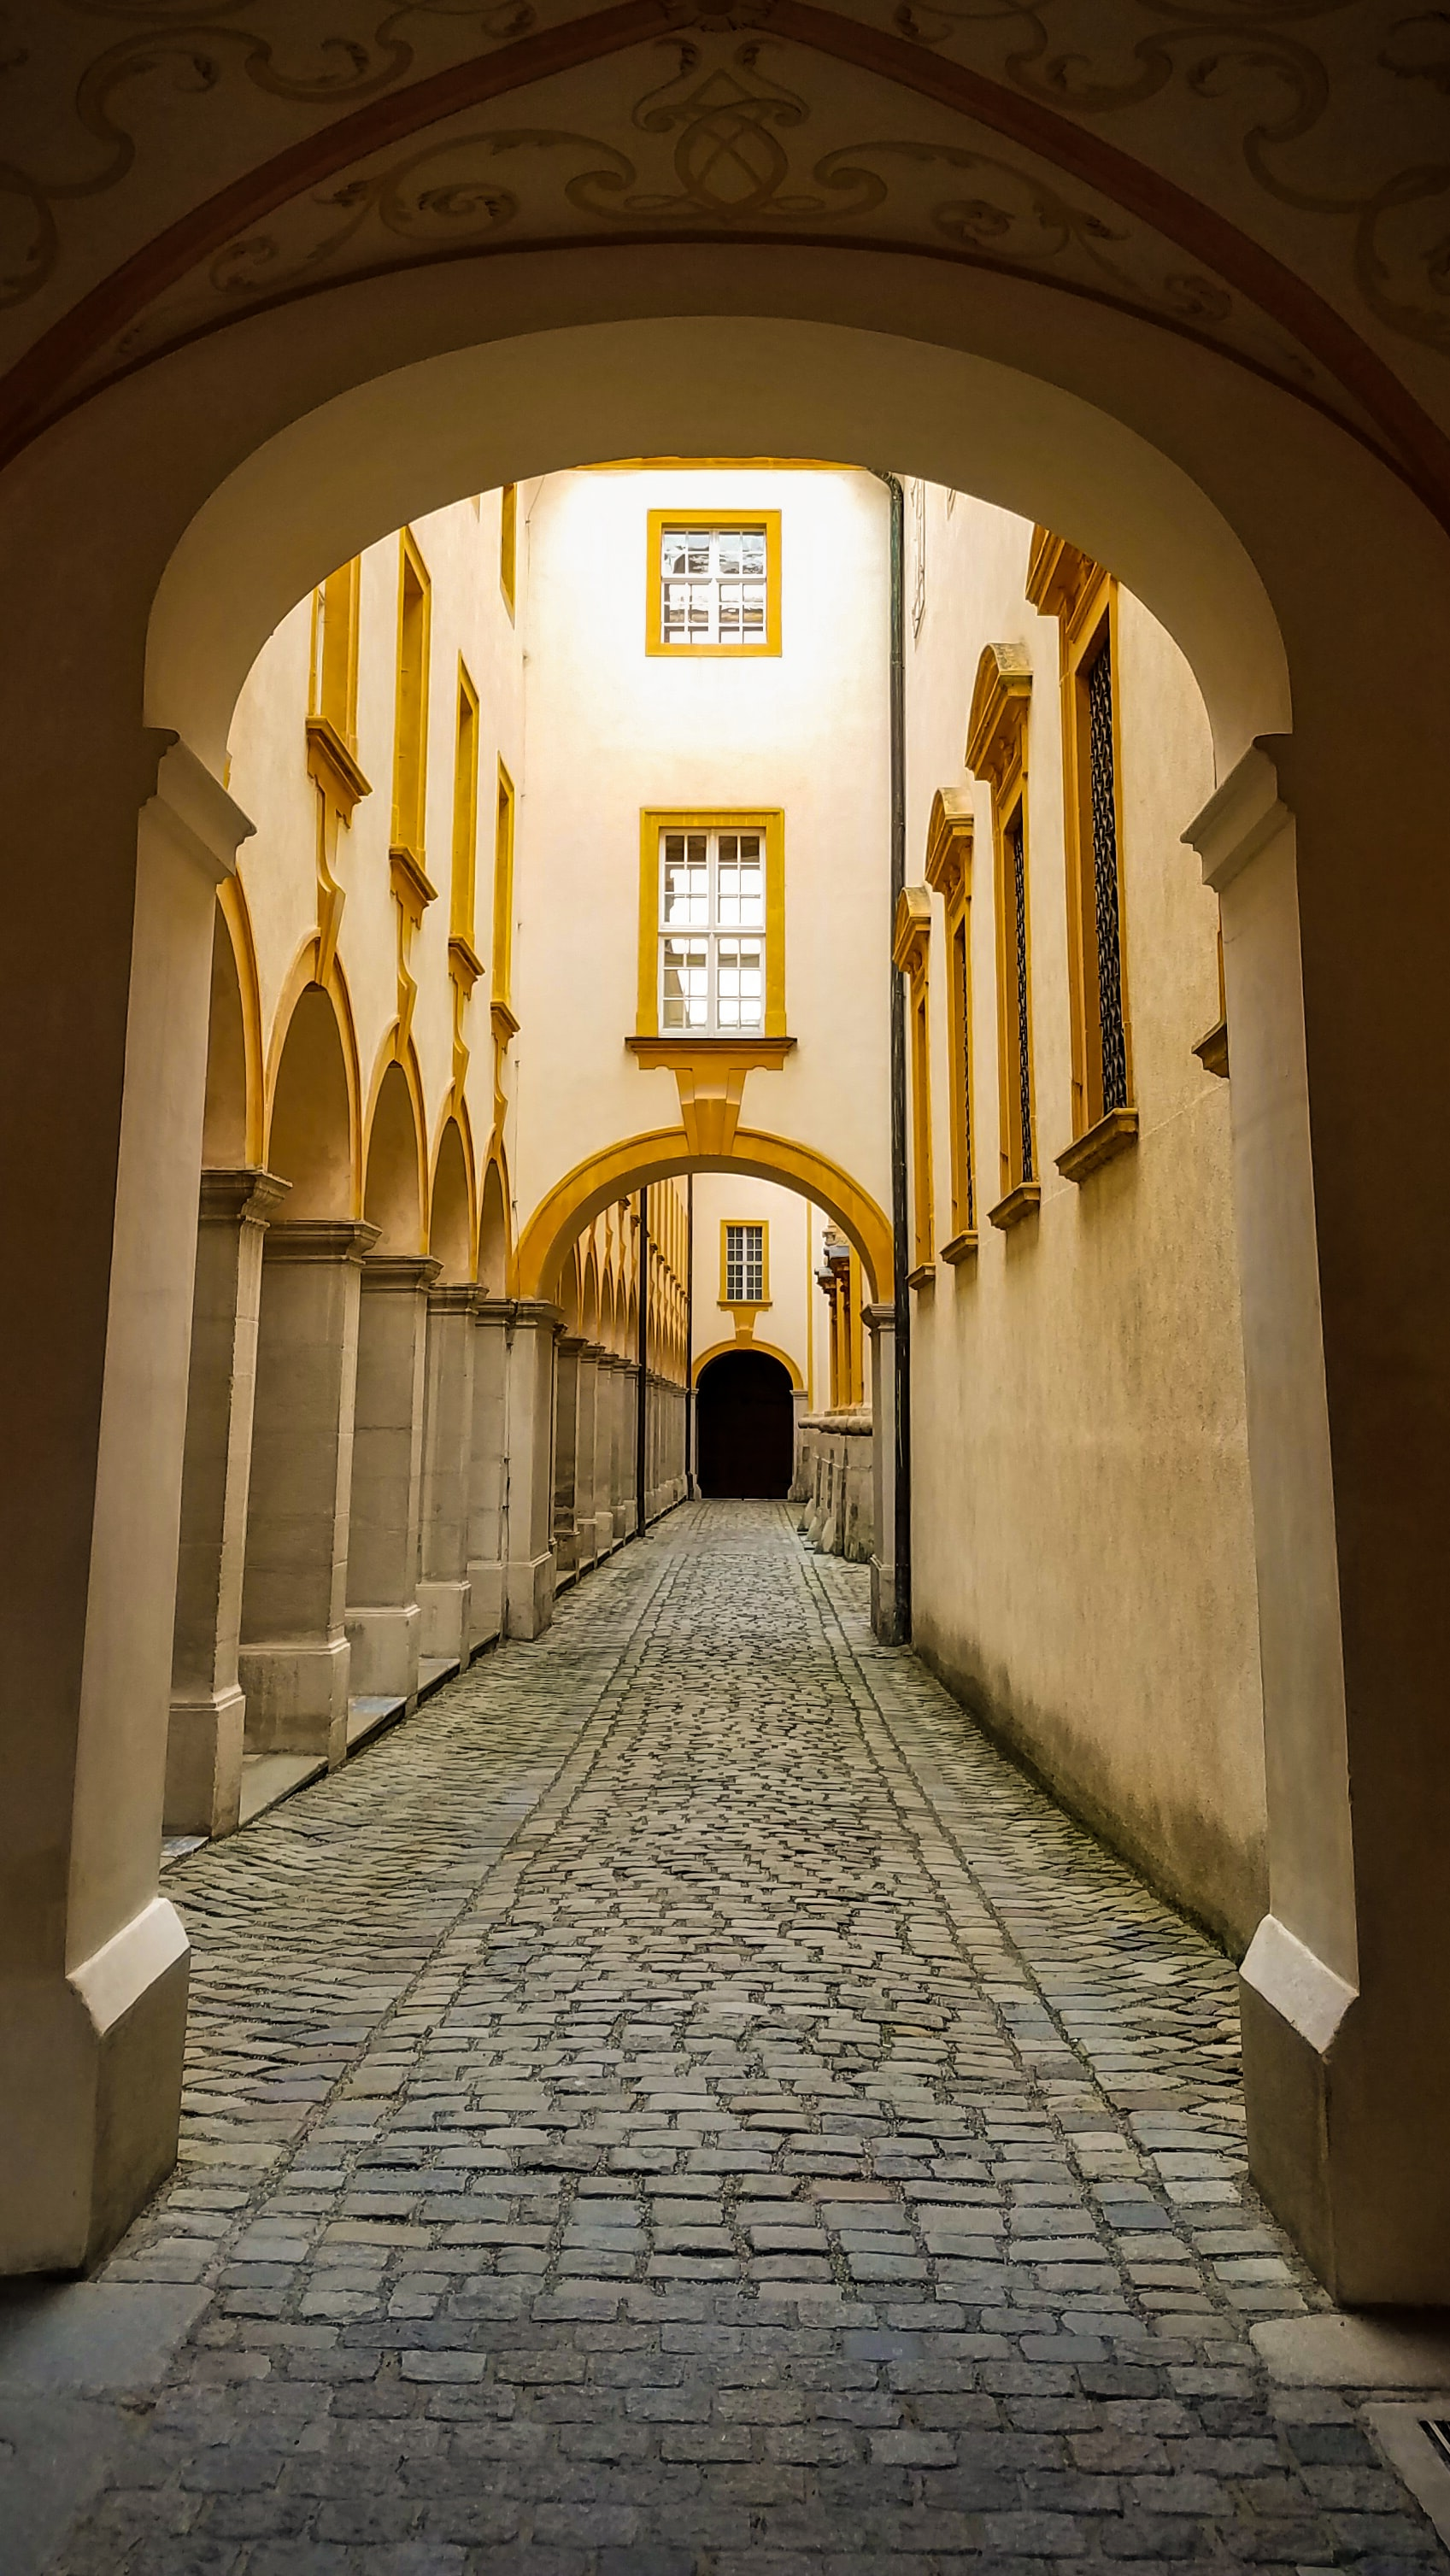 A view down a street whose space is created by a series of arches